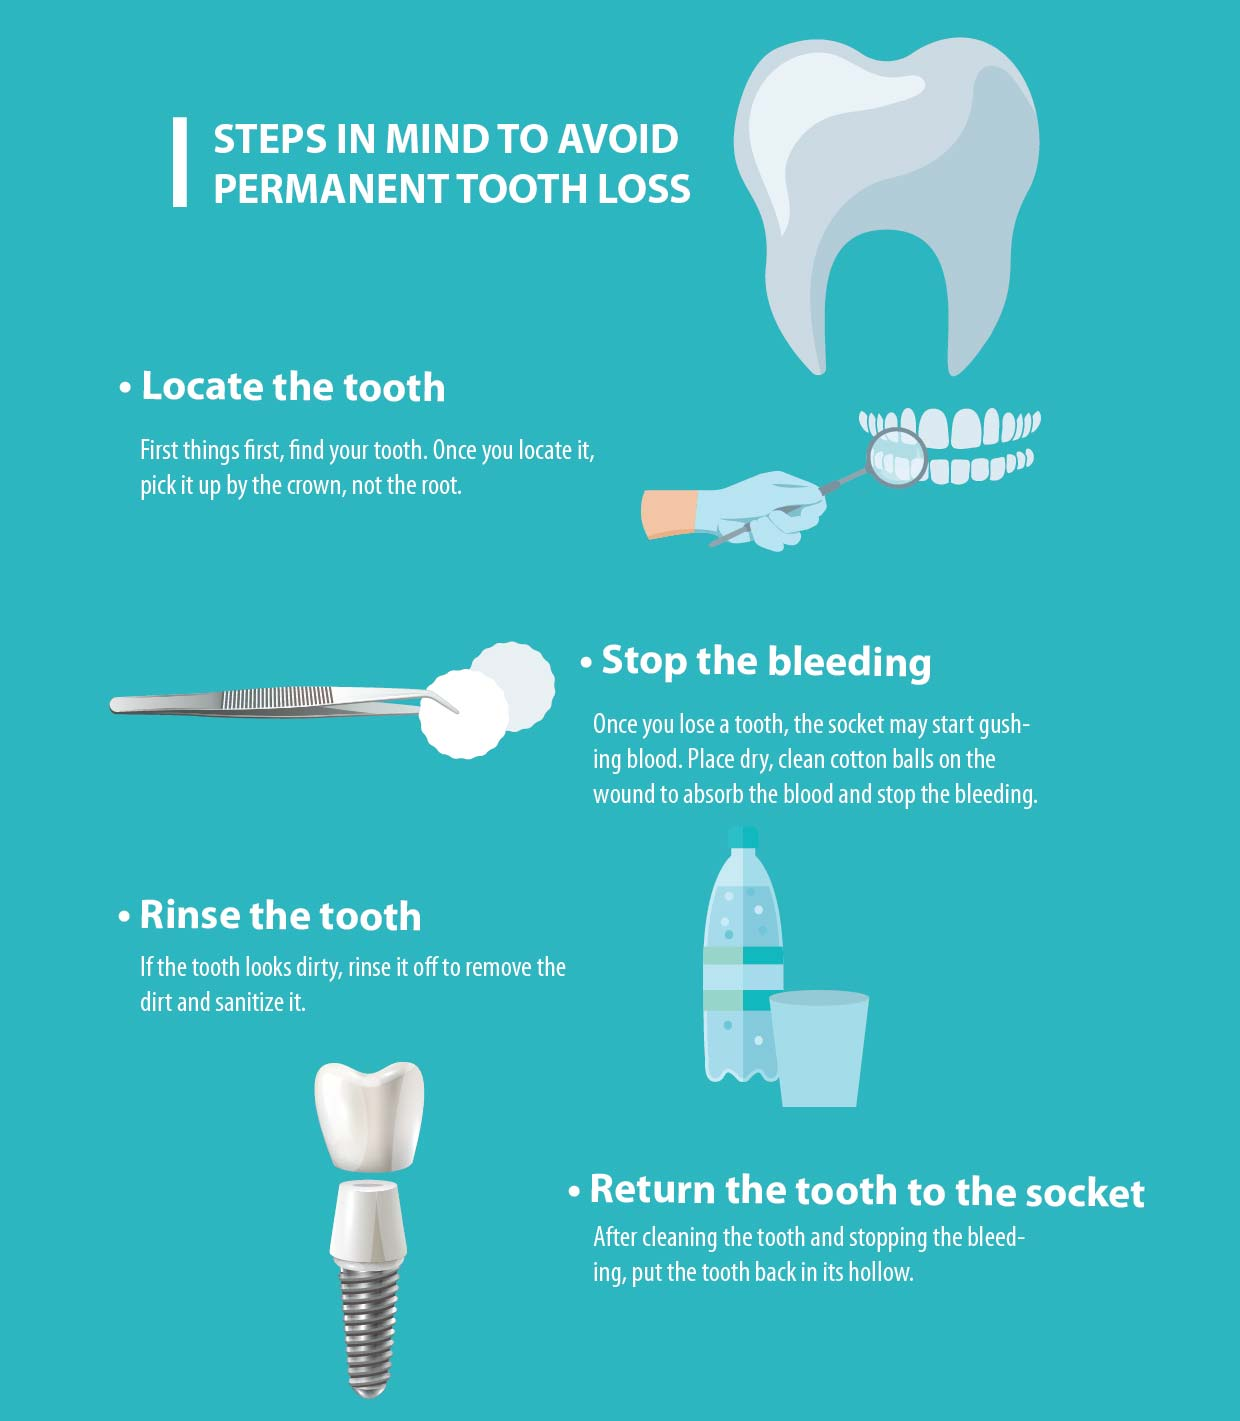 steps-to-avoid-permanent-tooth-loss